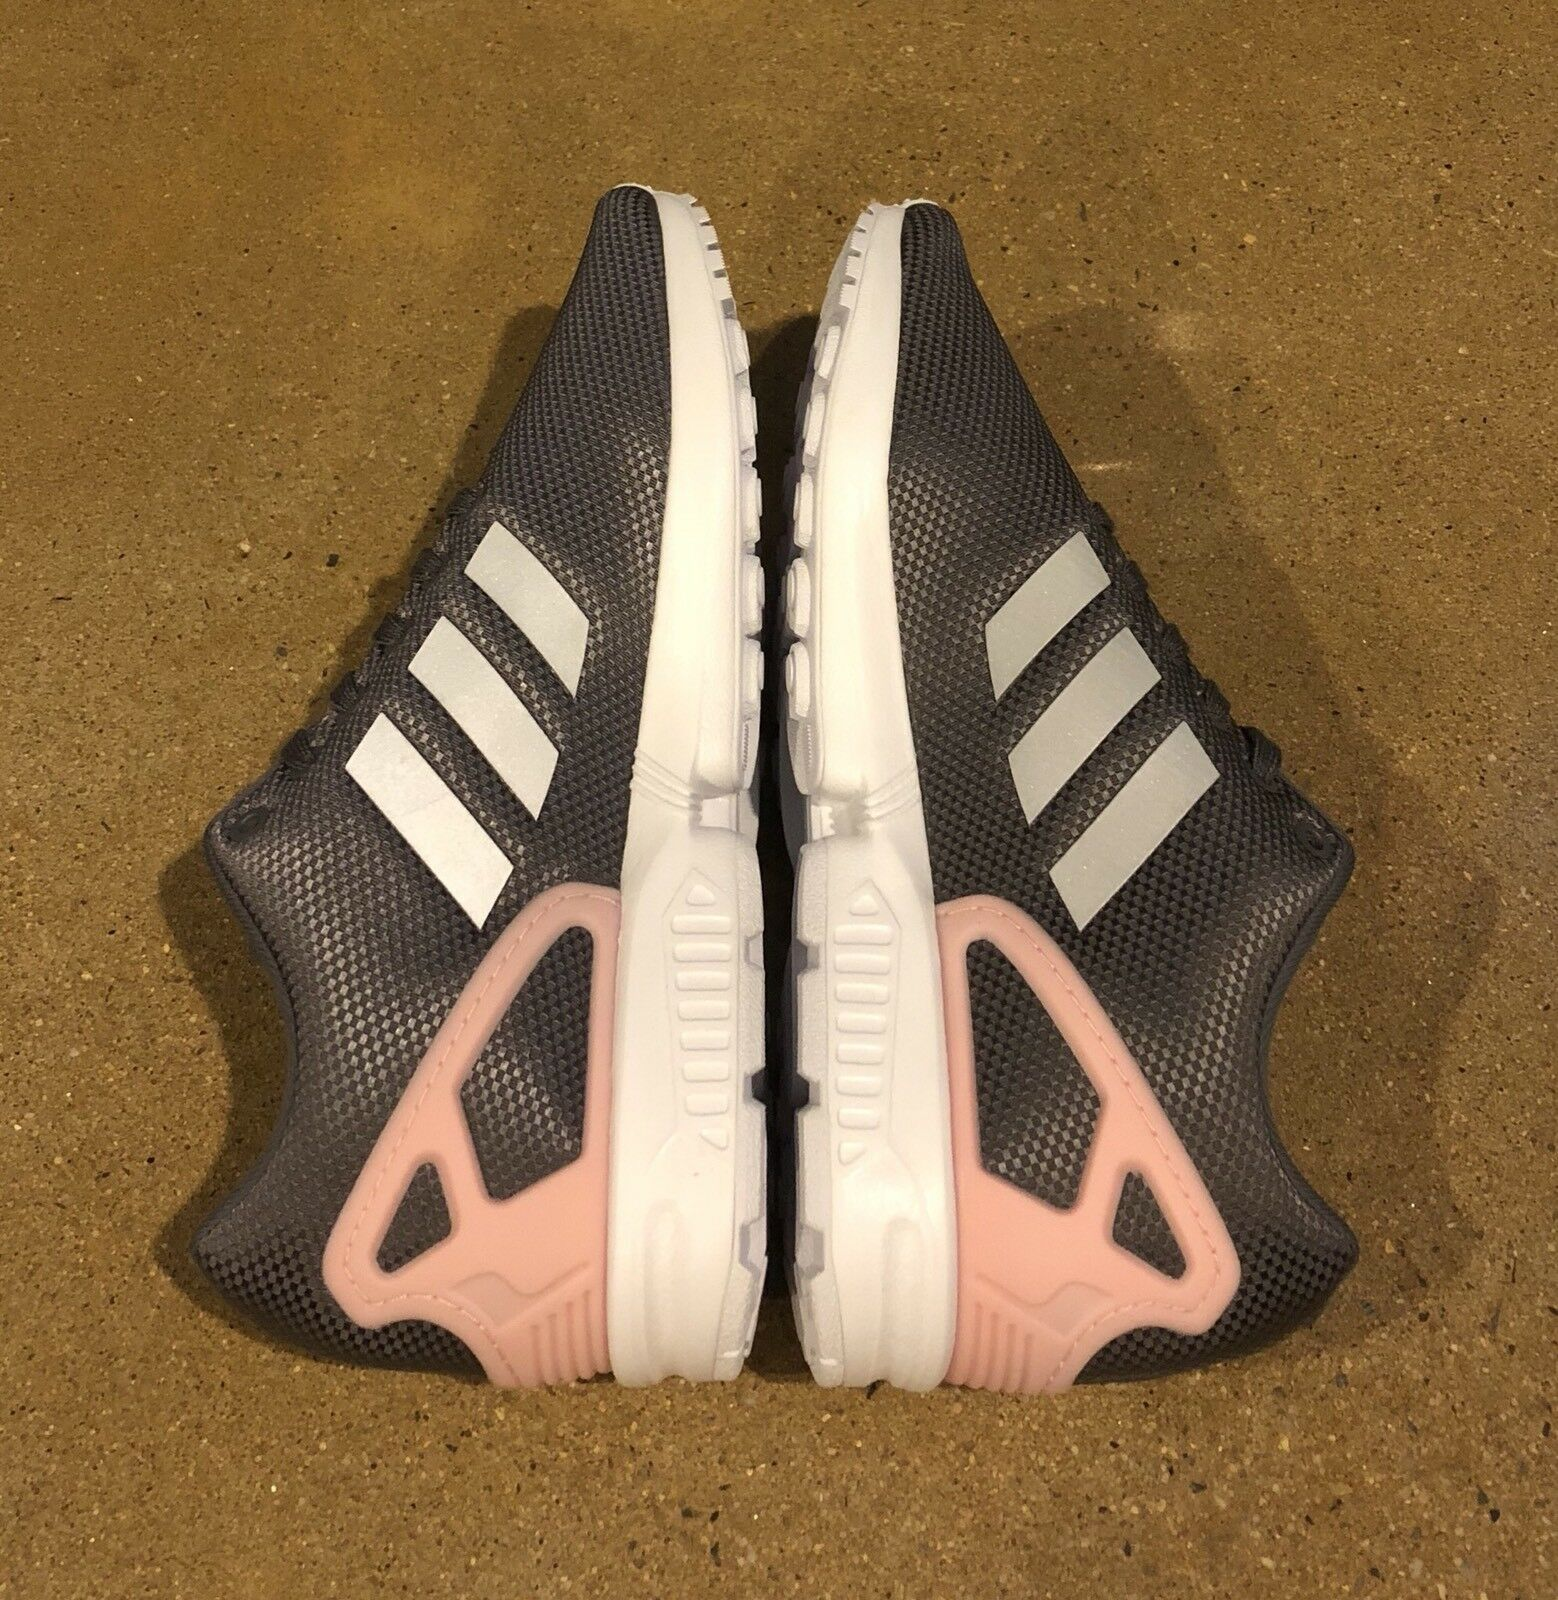 cb6989eec ... Adidas Zx Flux Women s Size 9.5 US US US Grey Pink Running Cross  Trainer Shoes 99cc54 ...